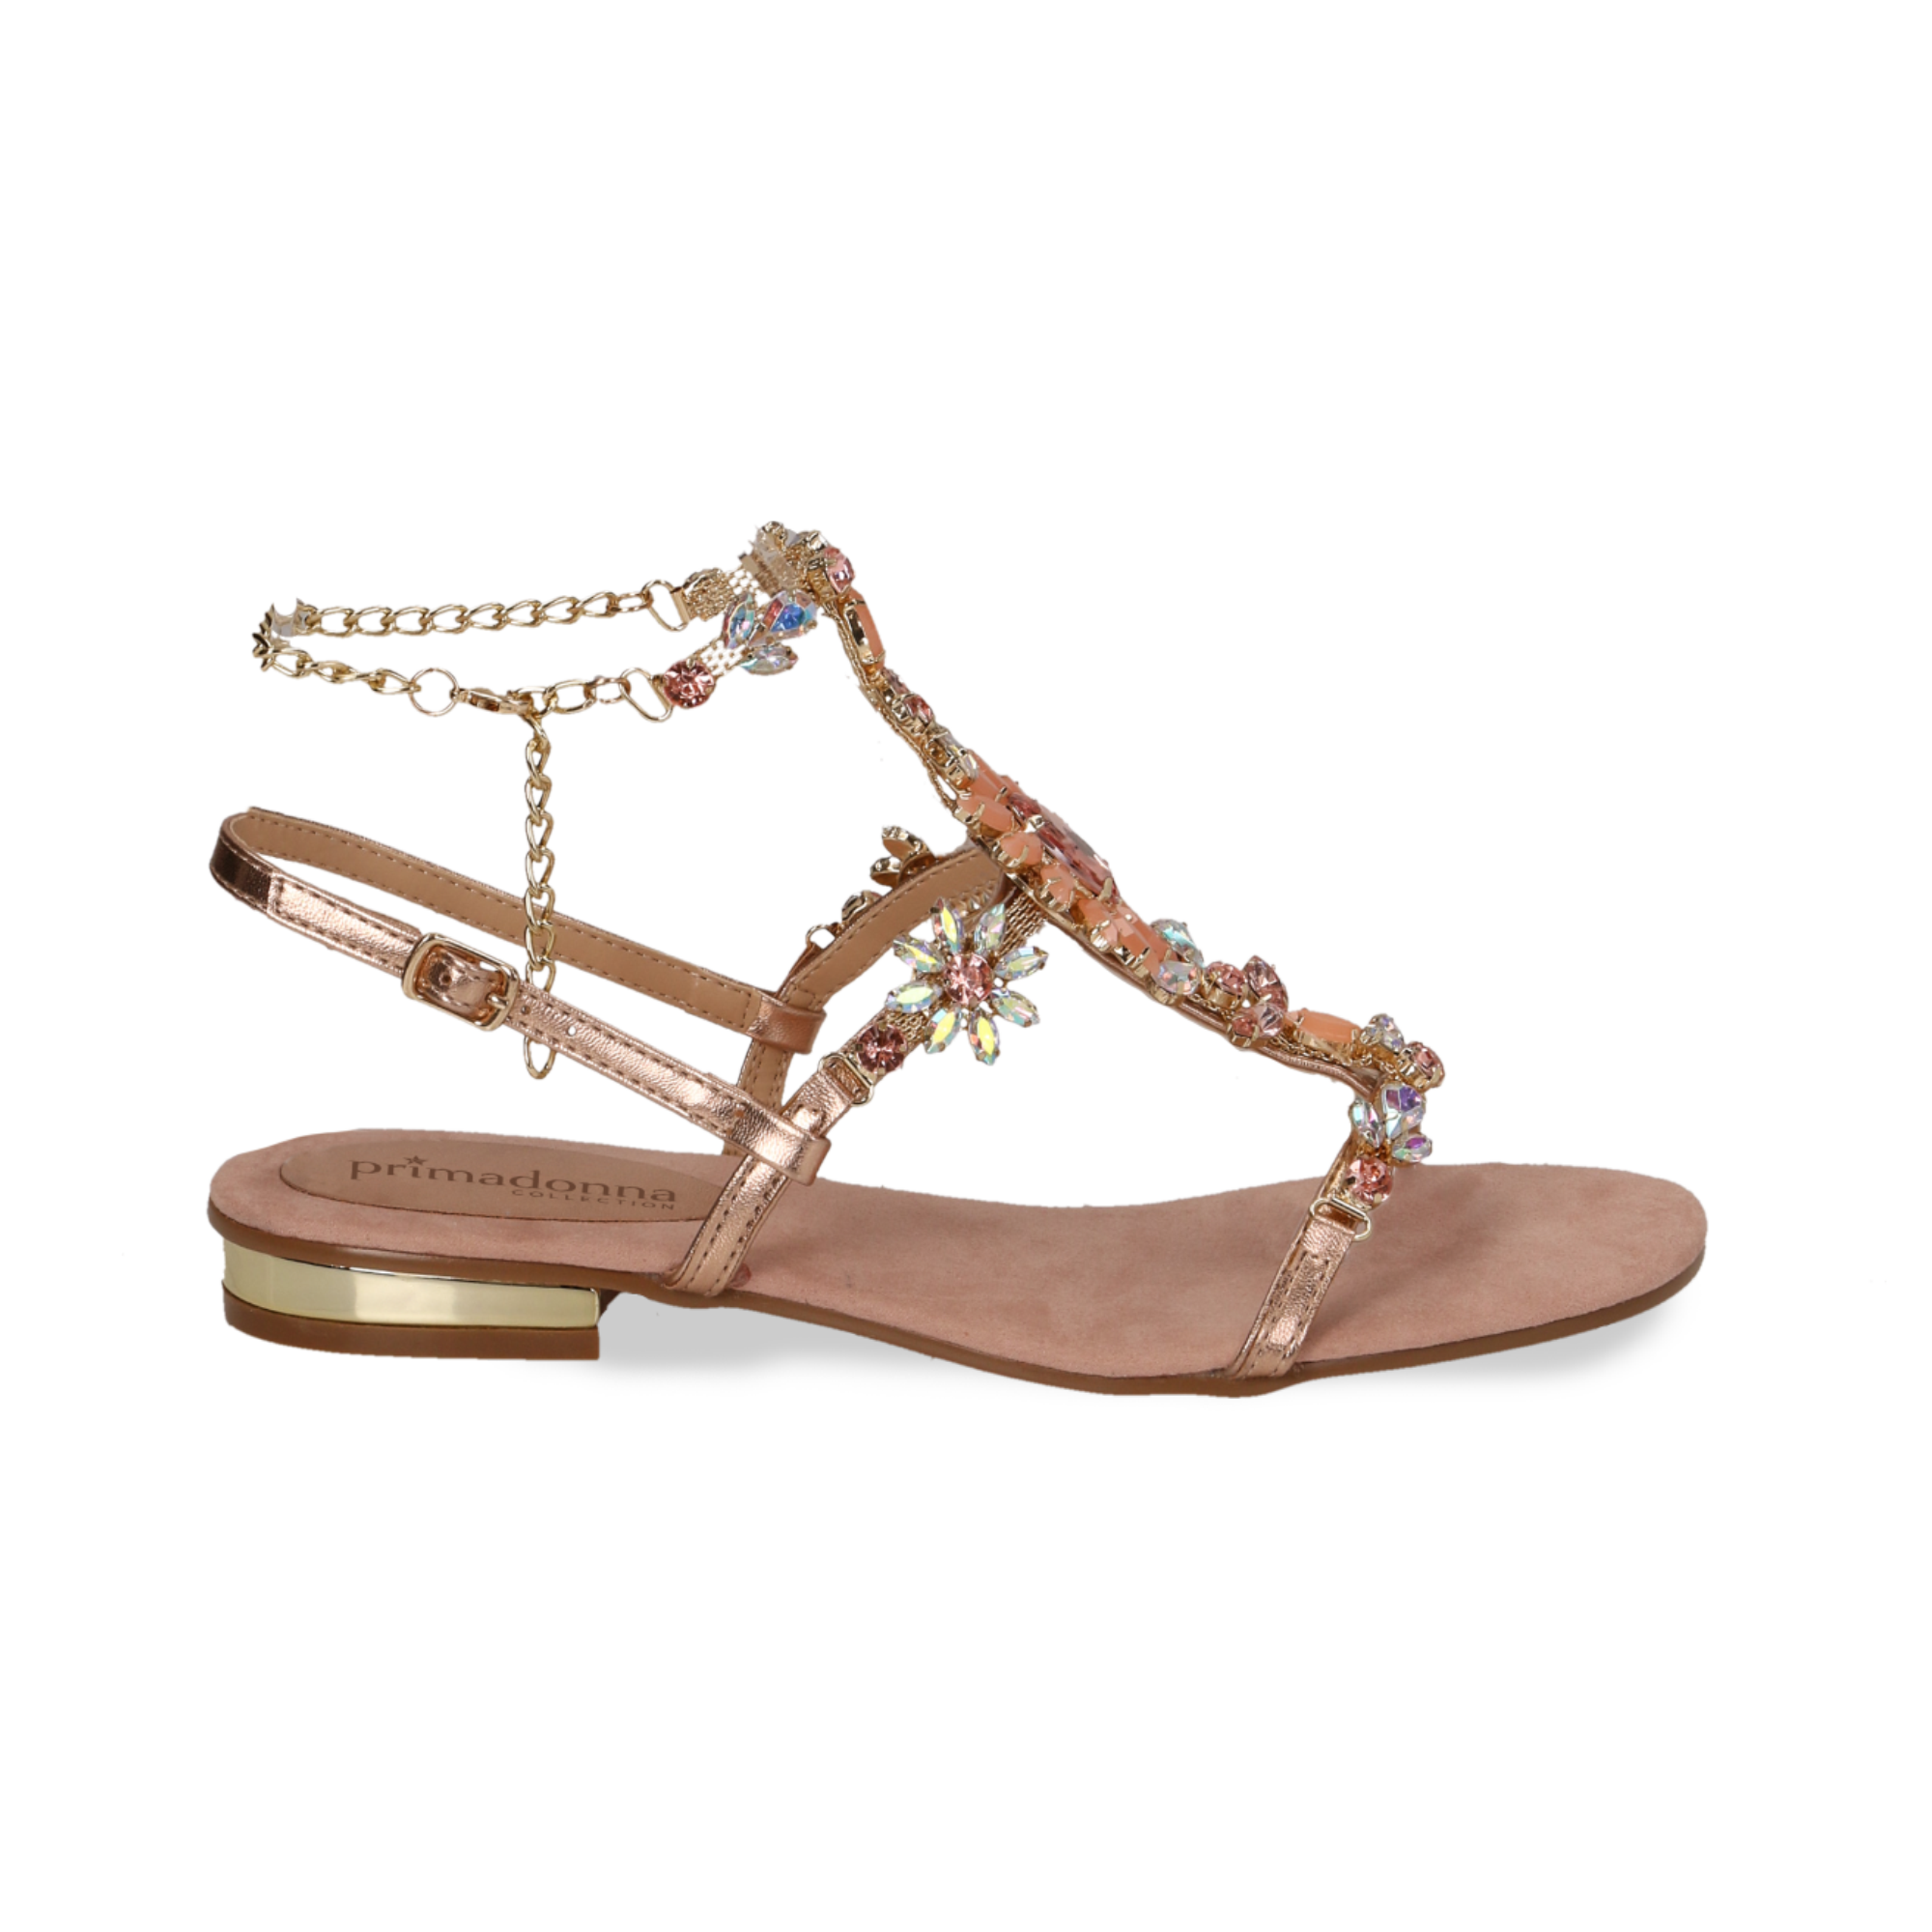 Flat Tl1j3cfk Nude Donnaprimadonna Collection Sandali Gioiello xsrdCthQB